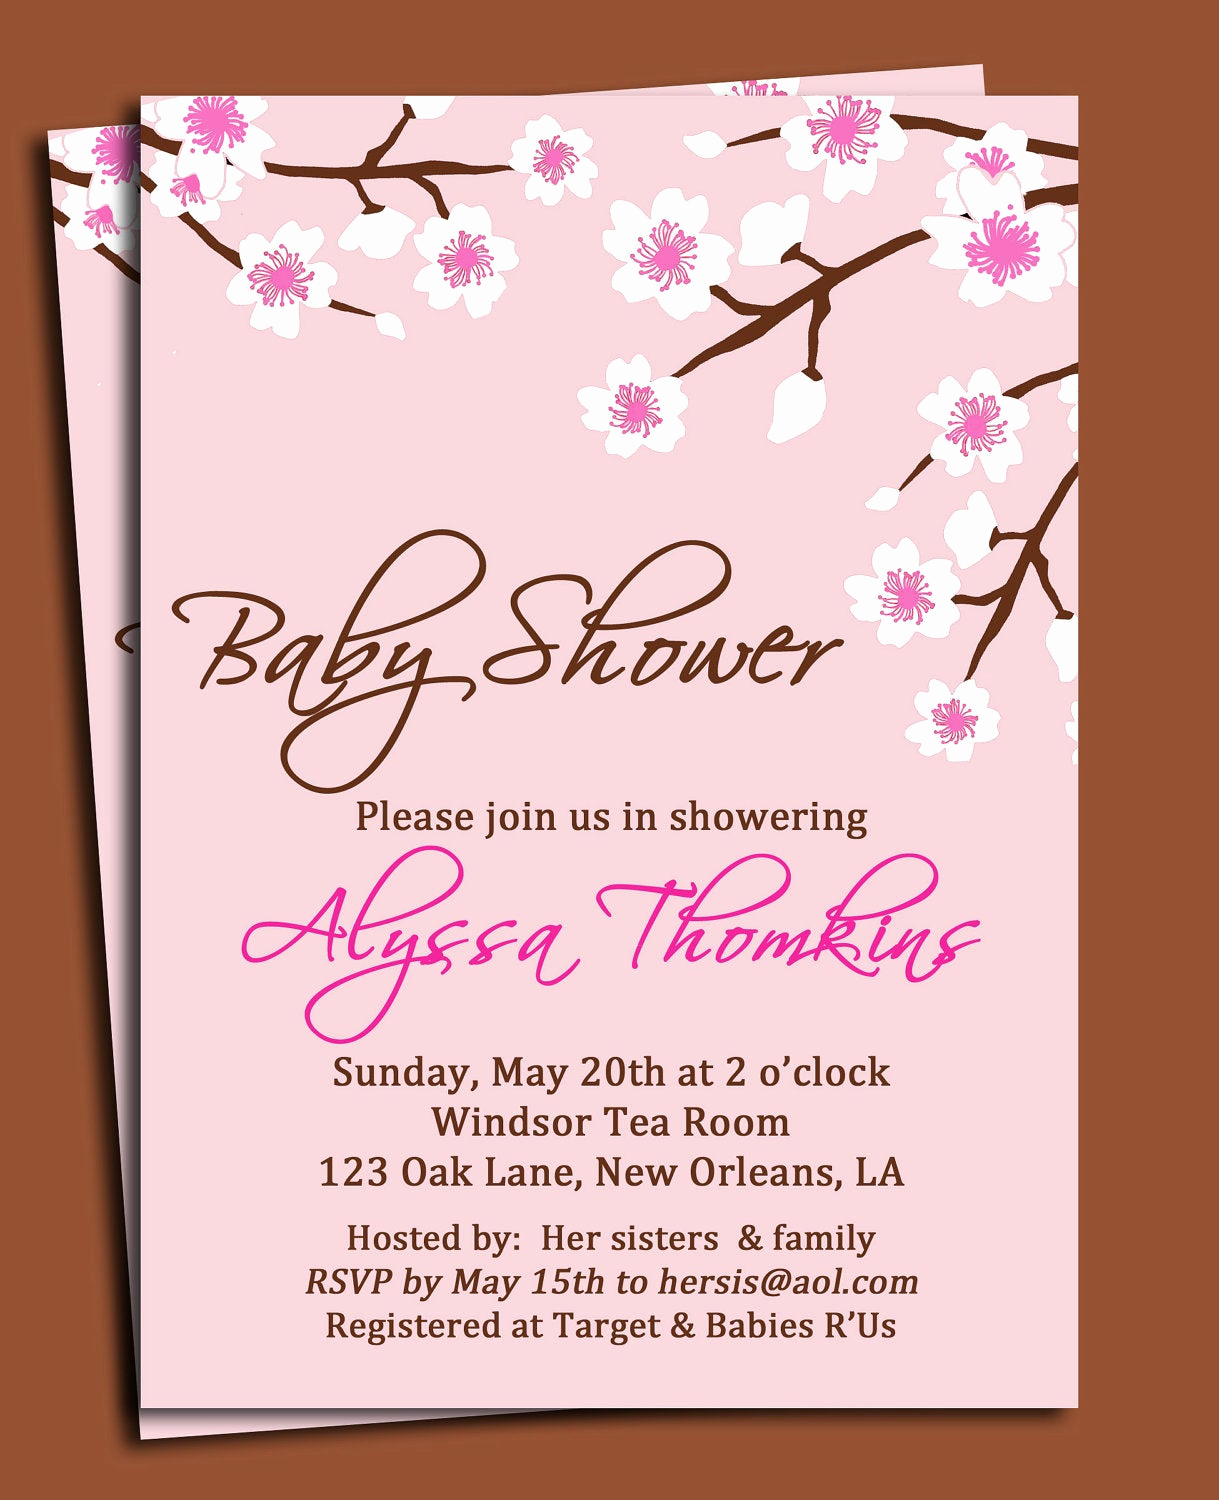 Diaper Shower Invitation Wording Lovely Cherry Blossom Invitation Printable or Printed with Free